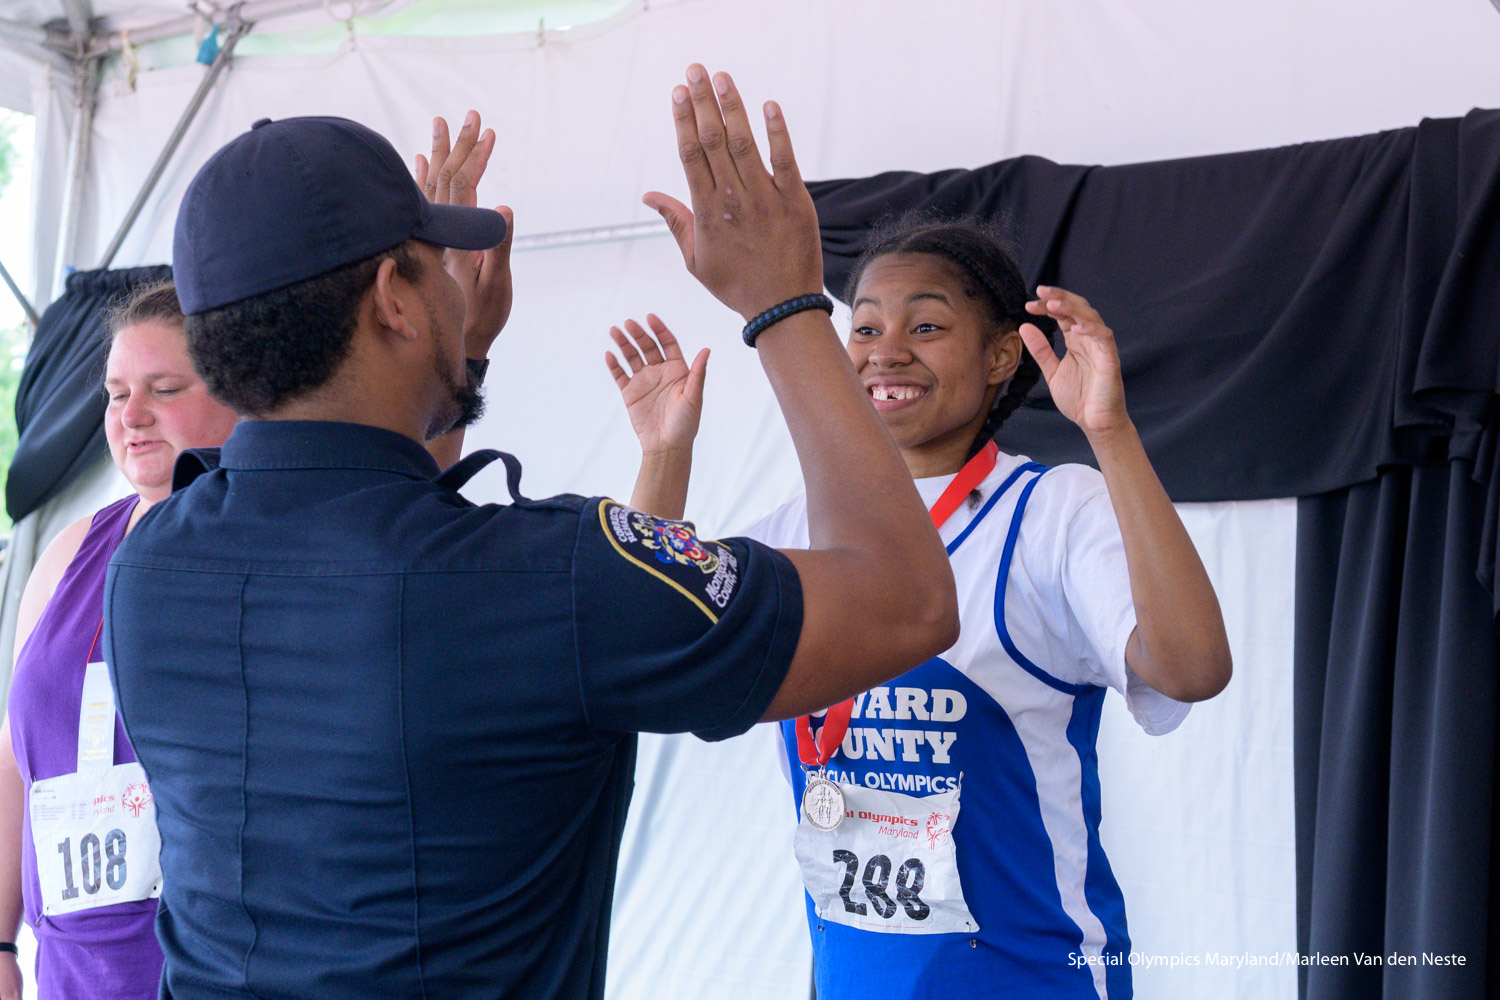 Athlete high-fiving a law enforcement officer after receiving a silver medal from him in the Awards tent at Unitas Stadium, Towson University, MD. on Sunday, June 9, 2019.